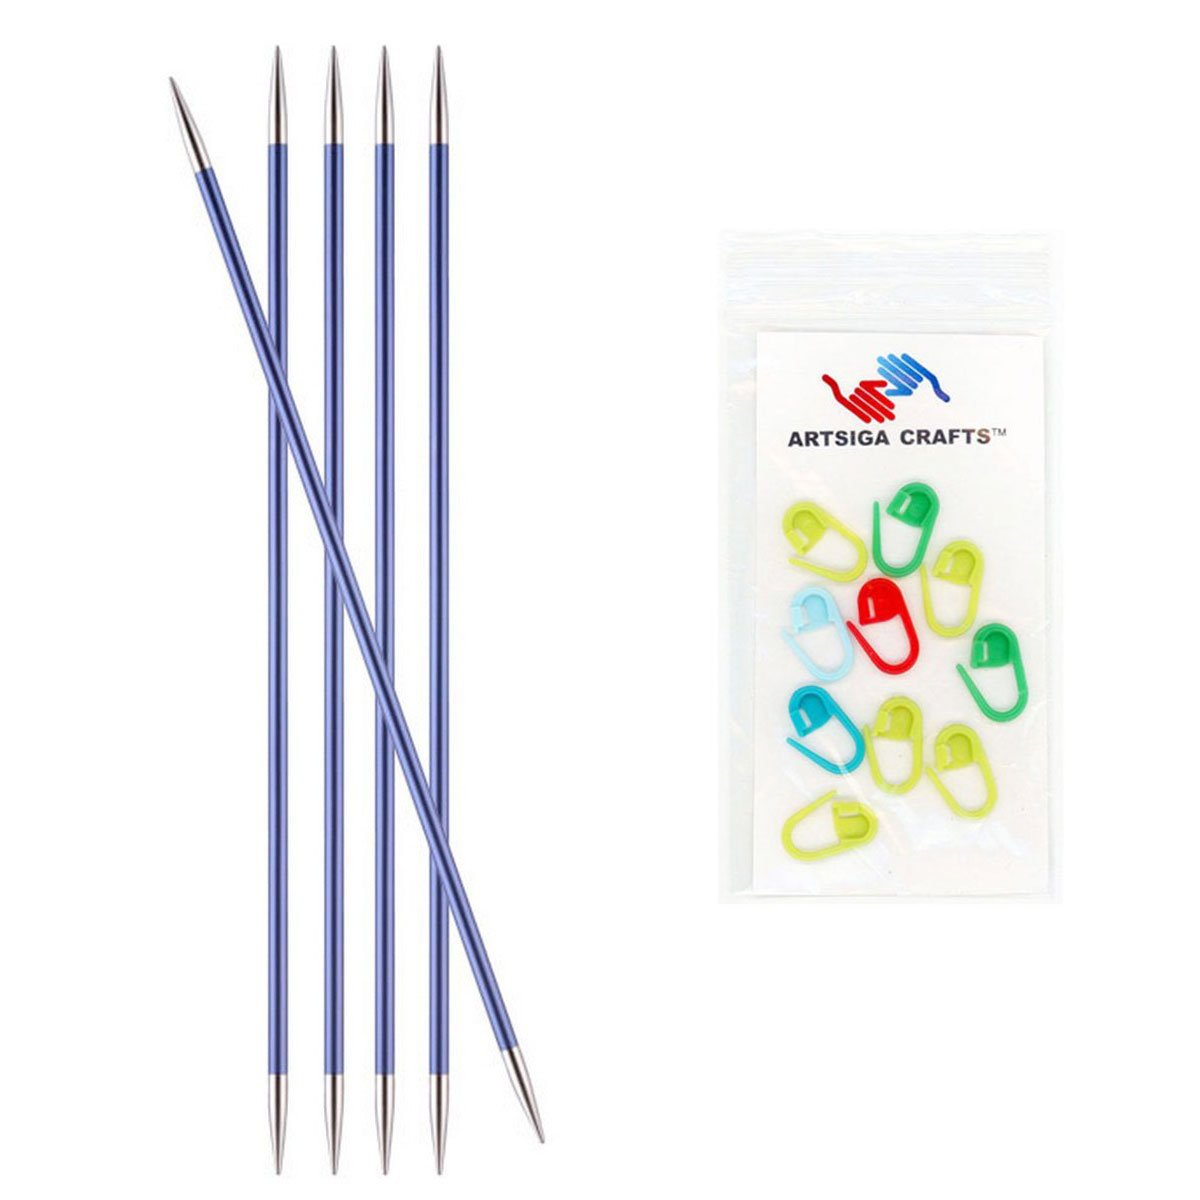 Knitter's Pride Zing Double Pointed Knitting Needles 8in. Size US 7 (4.5mm) Bundle with 10 Artsiga Crafts Stitch Markers 140040